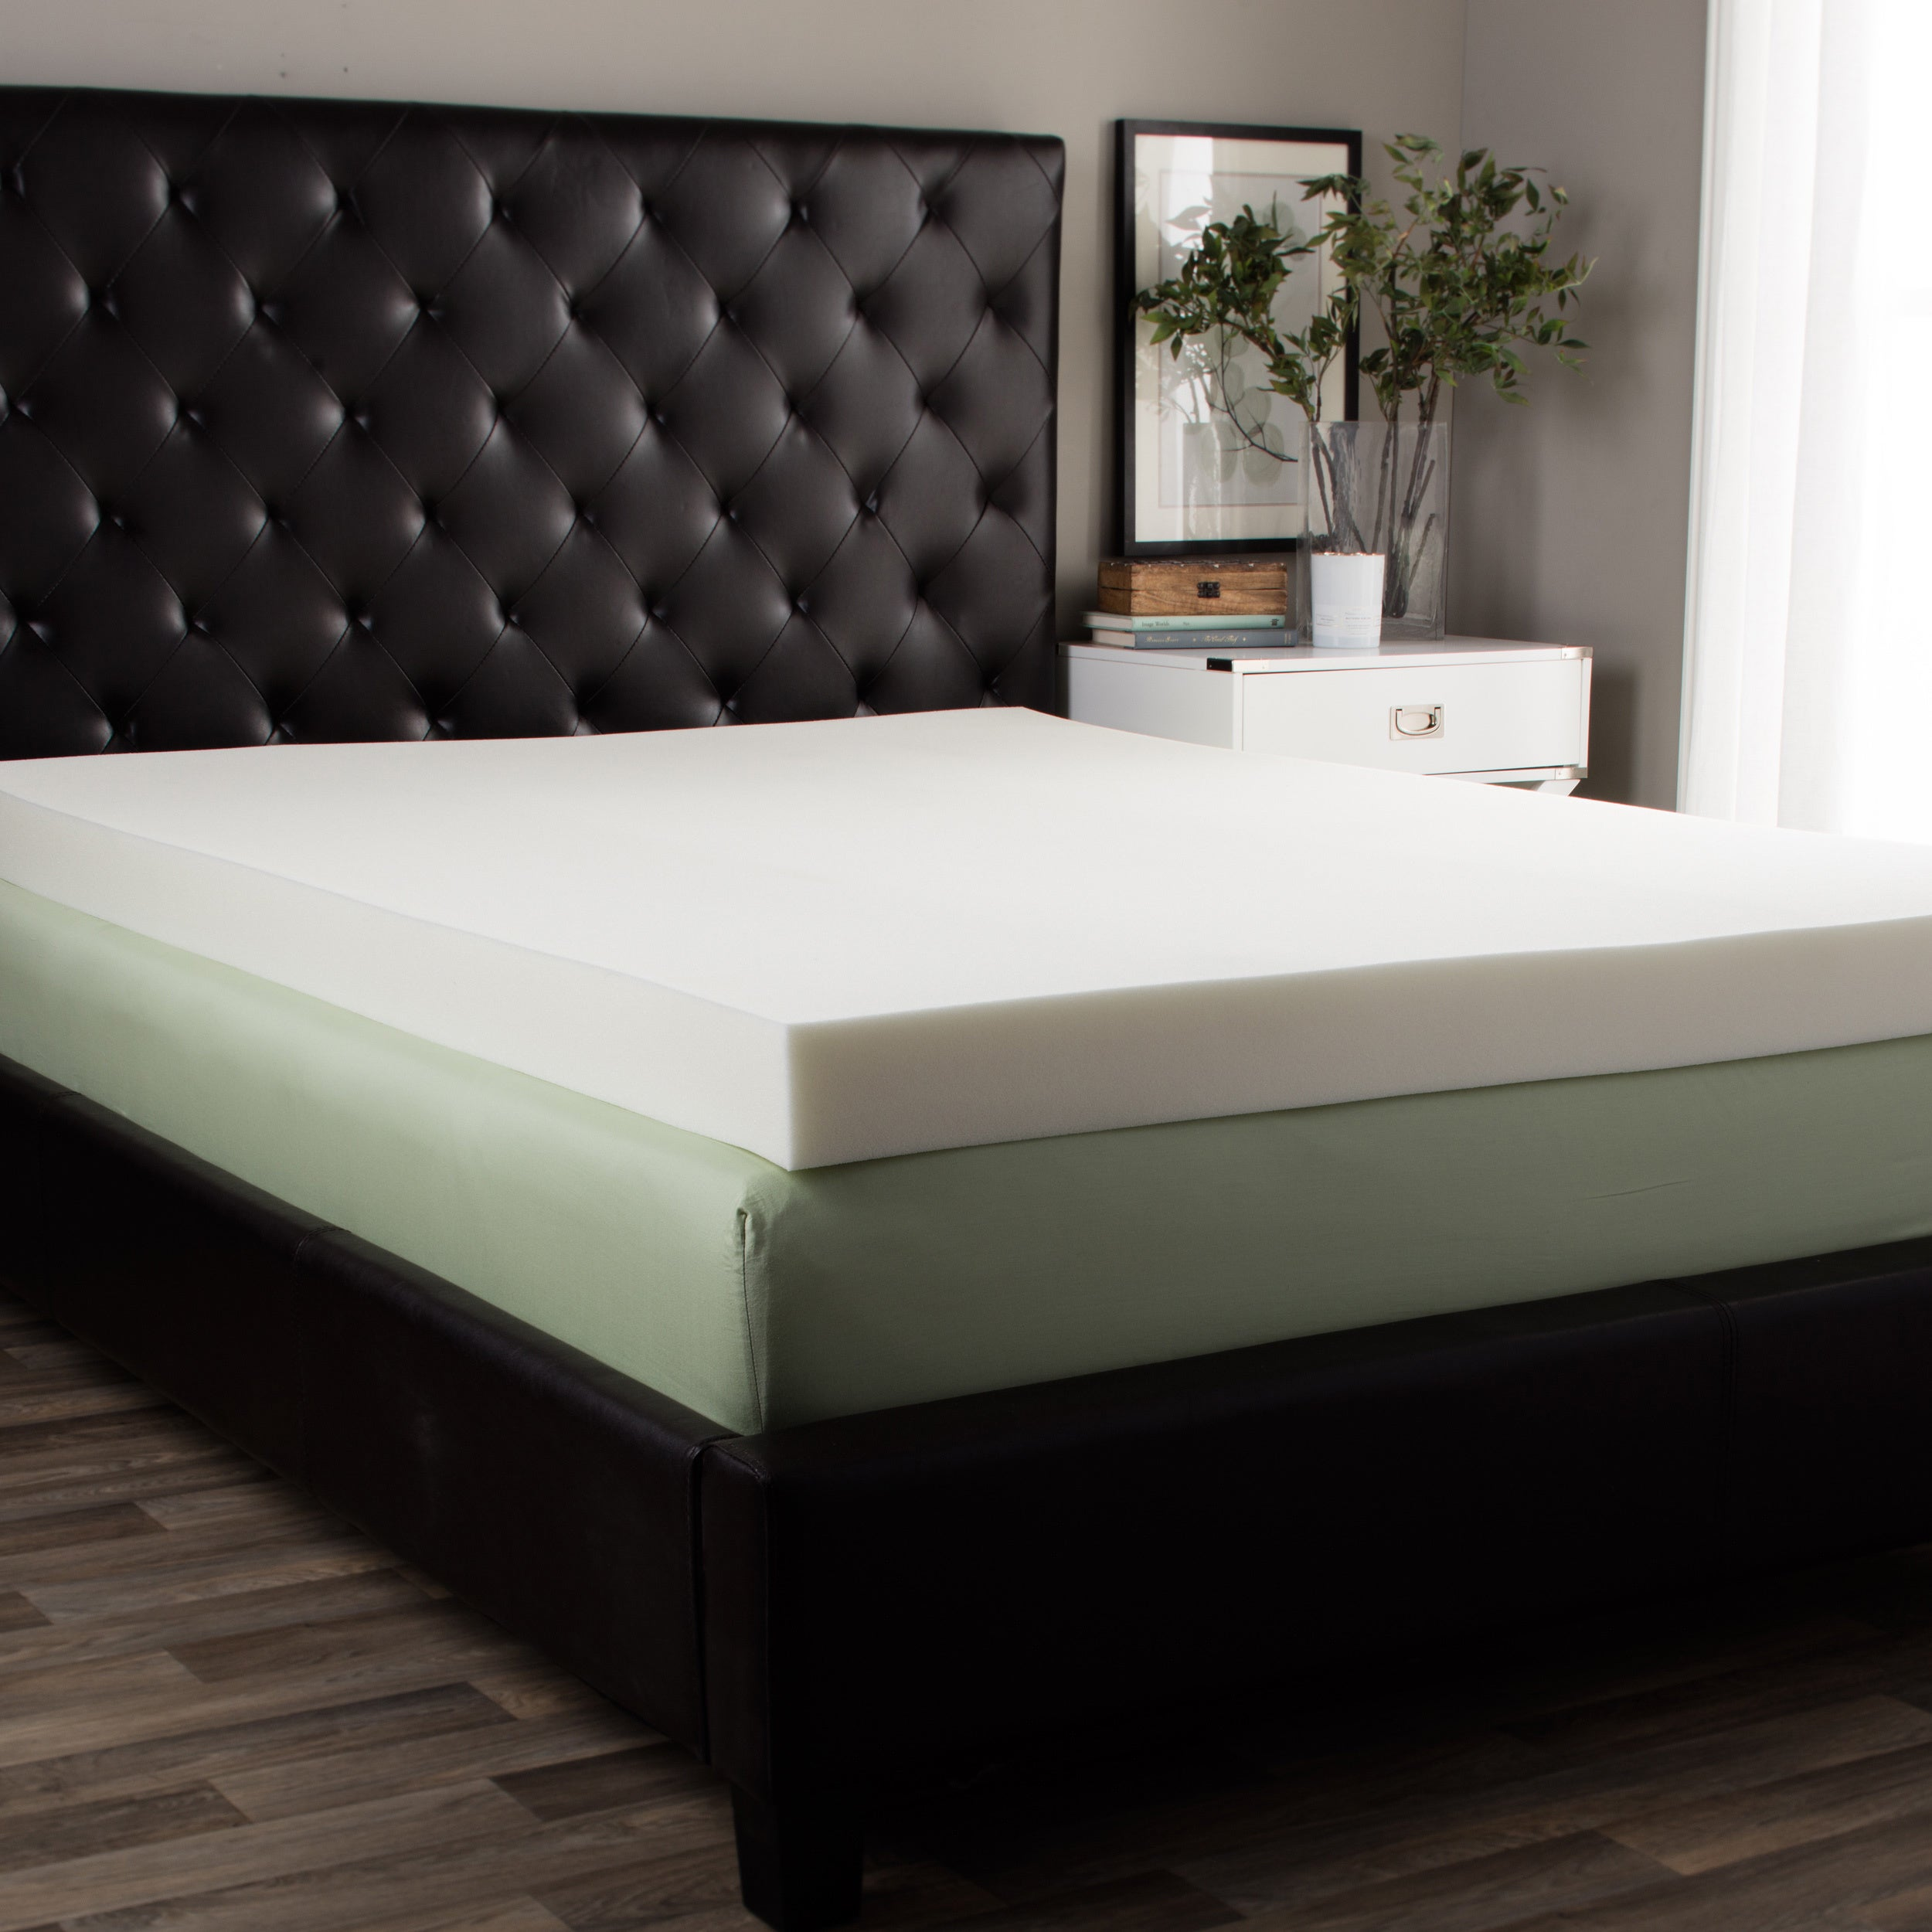 Splendorest 5-inch Queen/King-size Memory Foam Mattress T...